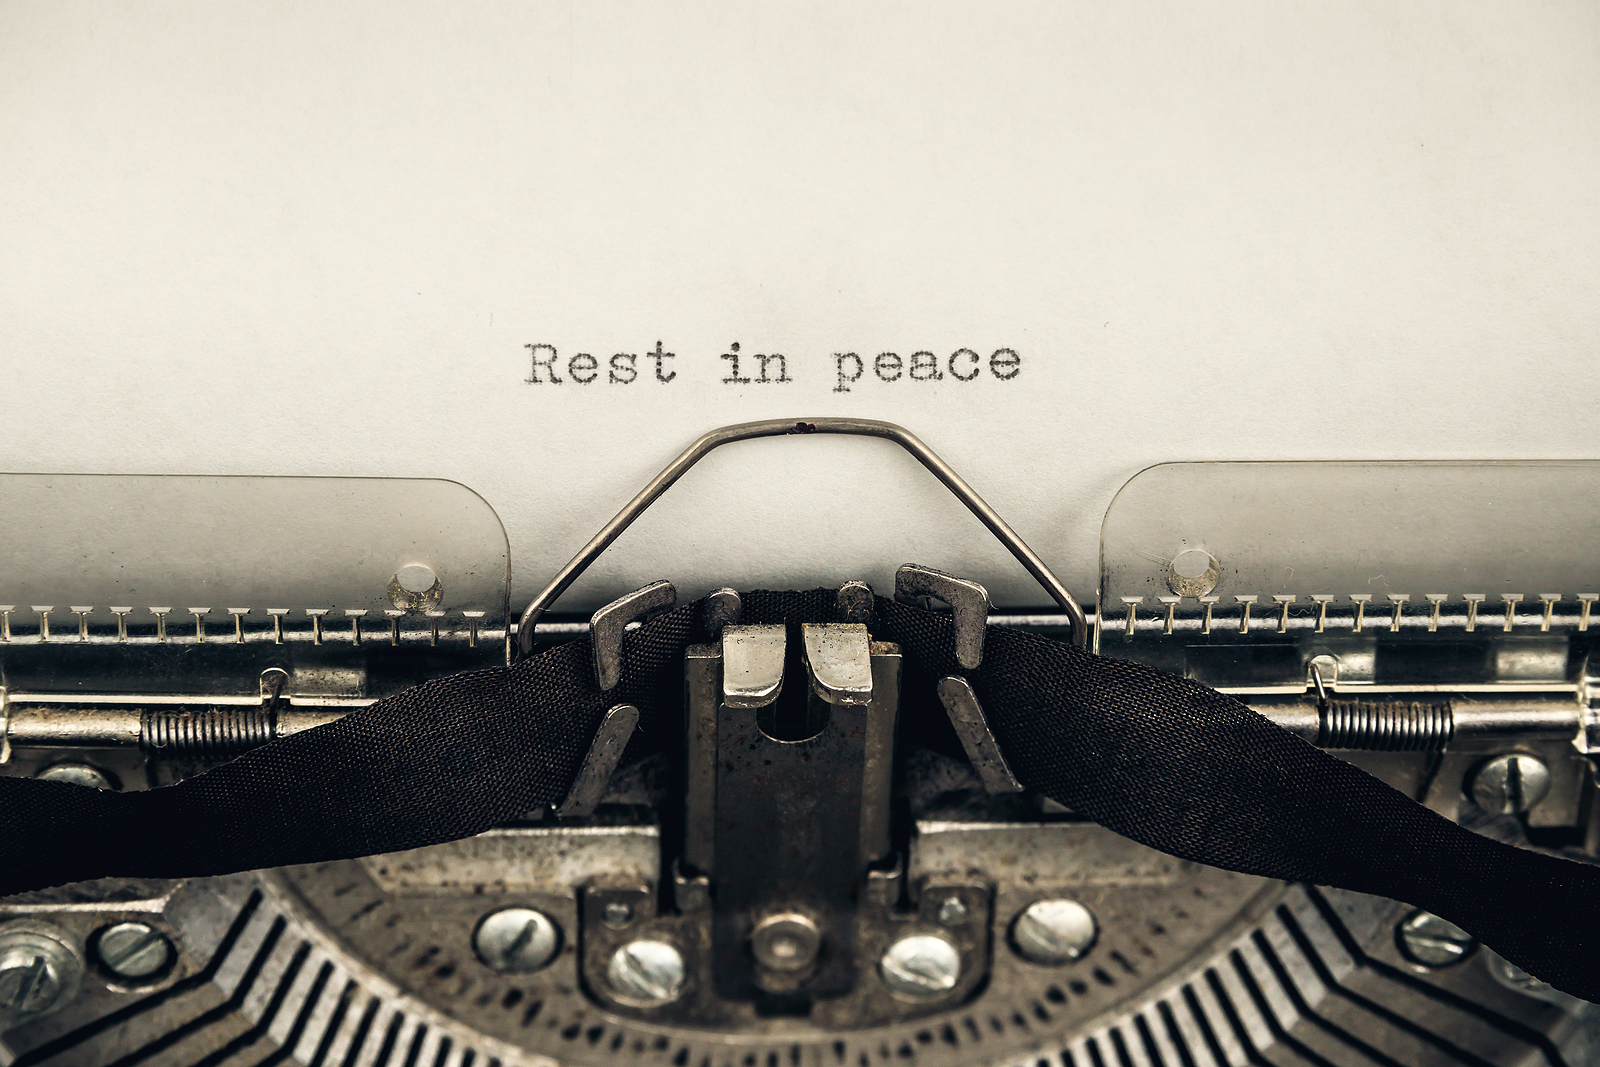 typing a message rest in peace on a vintage typewriter close-up. Is SEO dead? Nope. Not at all. Learn more from a SEO expert here.